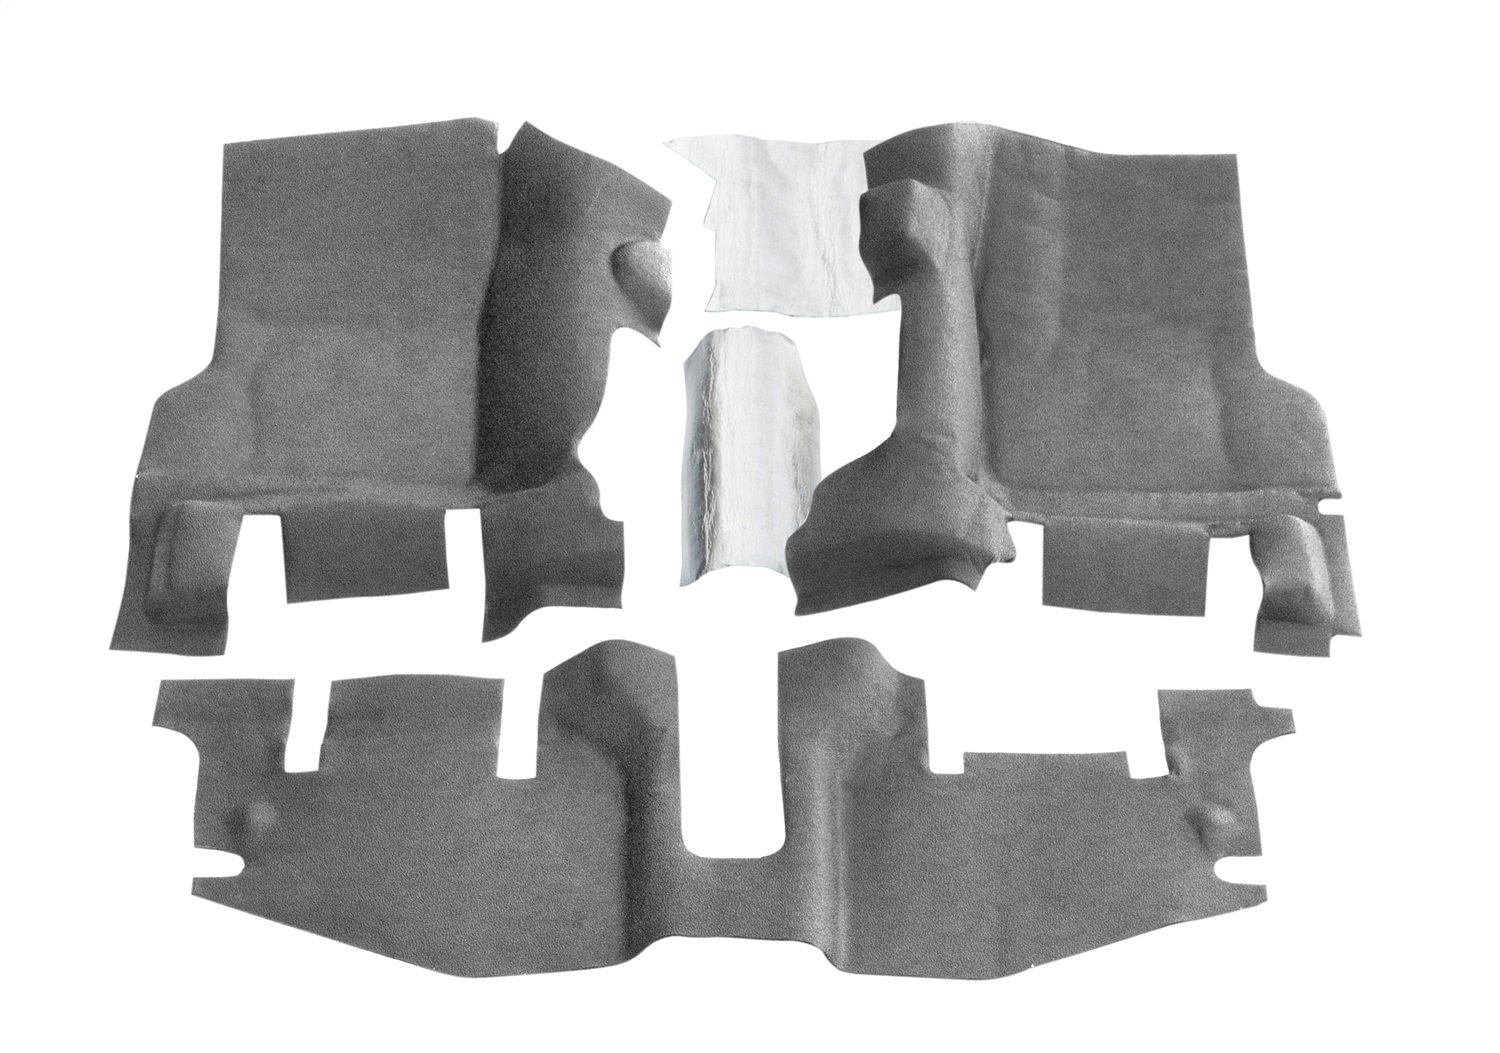 BedRug Jeep Kit - BedTred BTTJ97F fits 97-06 WRANGLER TJ/LJ FRONT 3PC FLOOR KIT (WITH CENTER CONSOLE) - INCLUDES HEAT SHIELDS